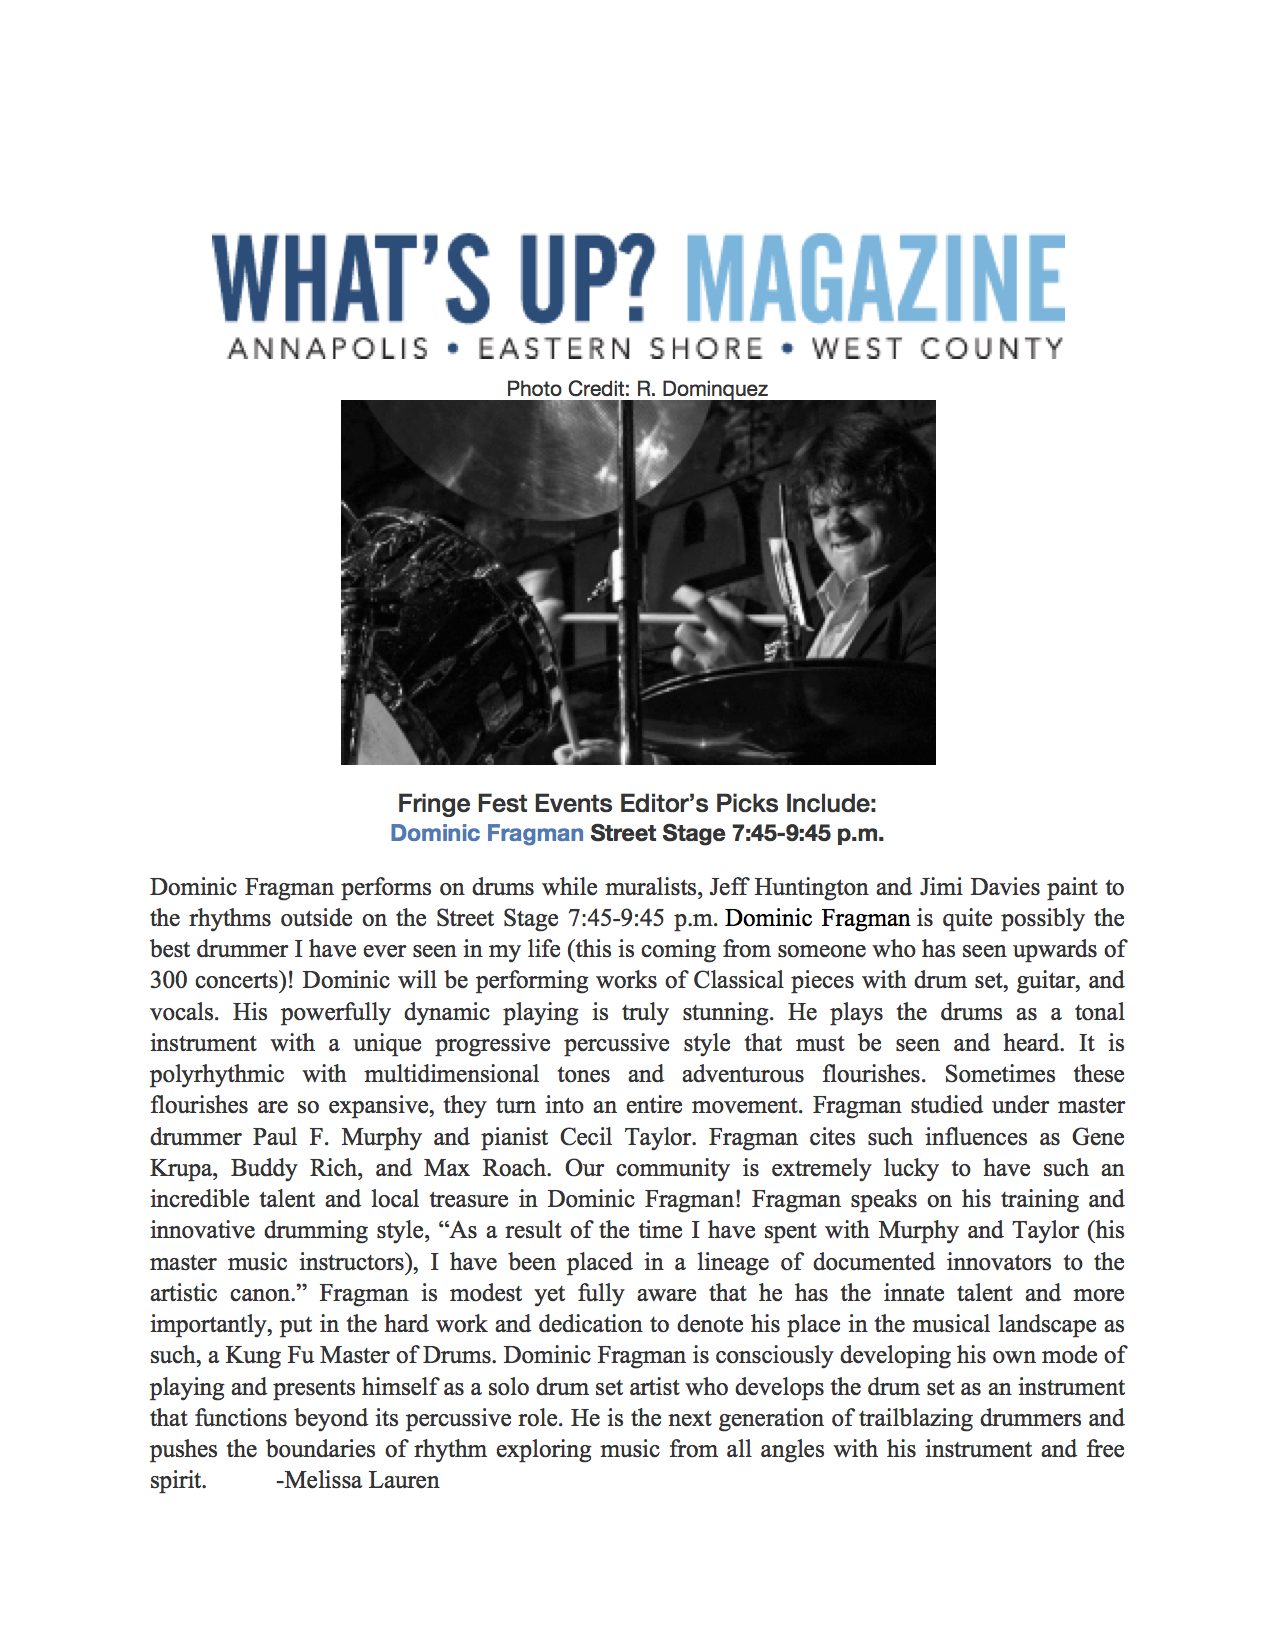 Dominic Fragman Whats Up Magazine